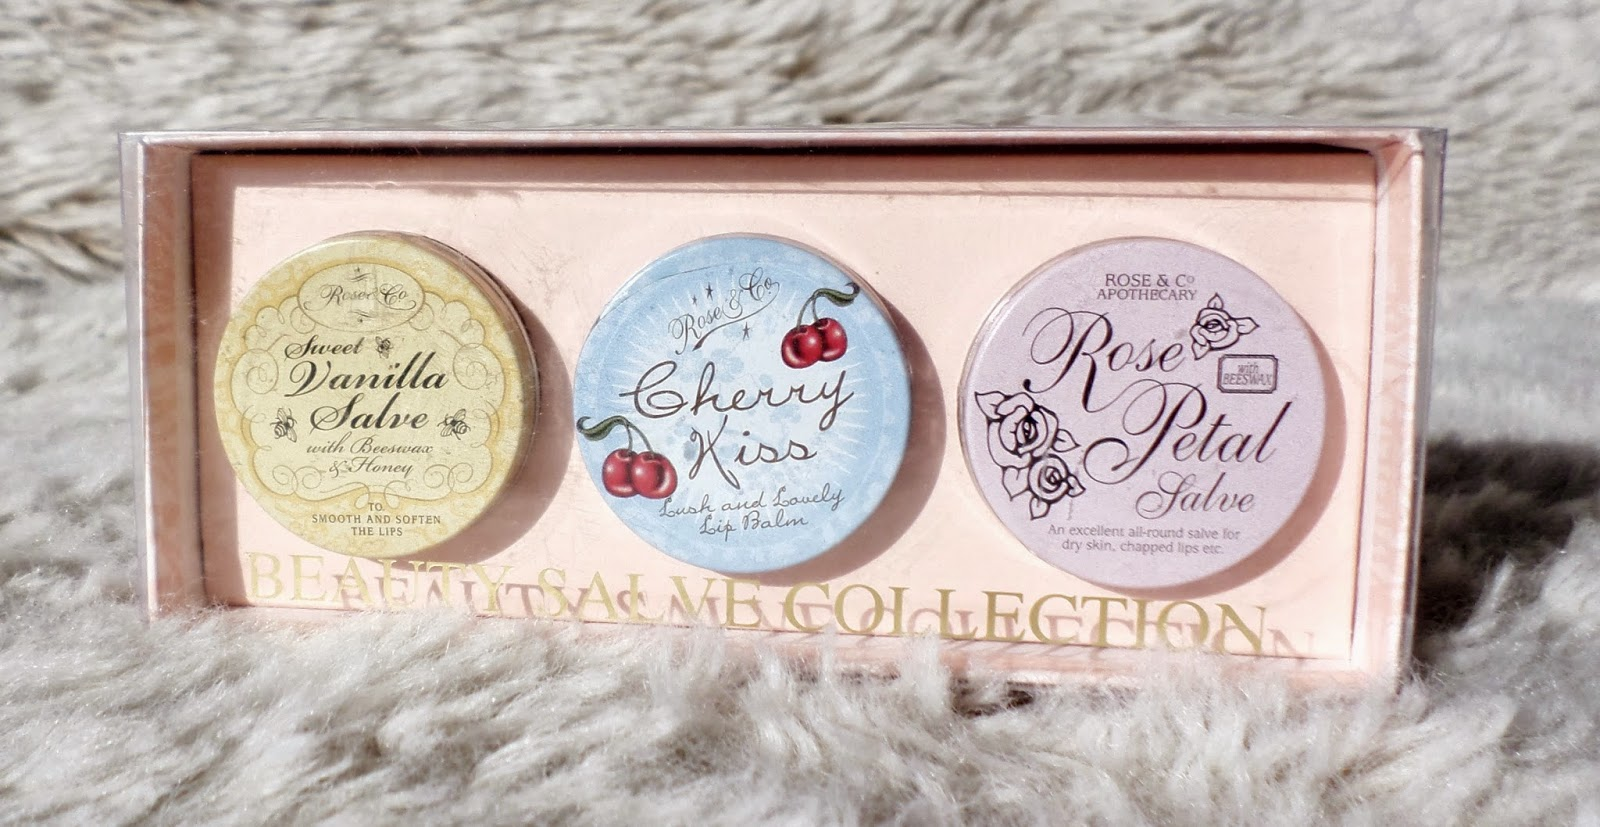 Rose & Co. Beauty Salve Collection